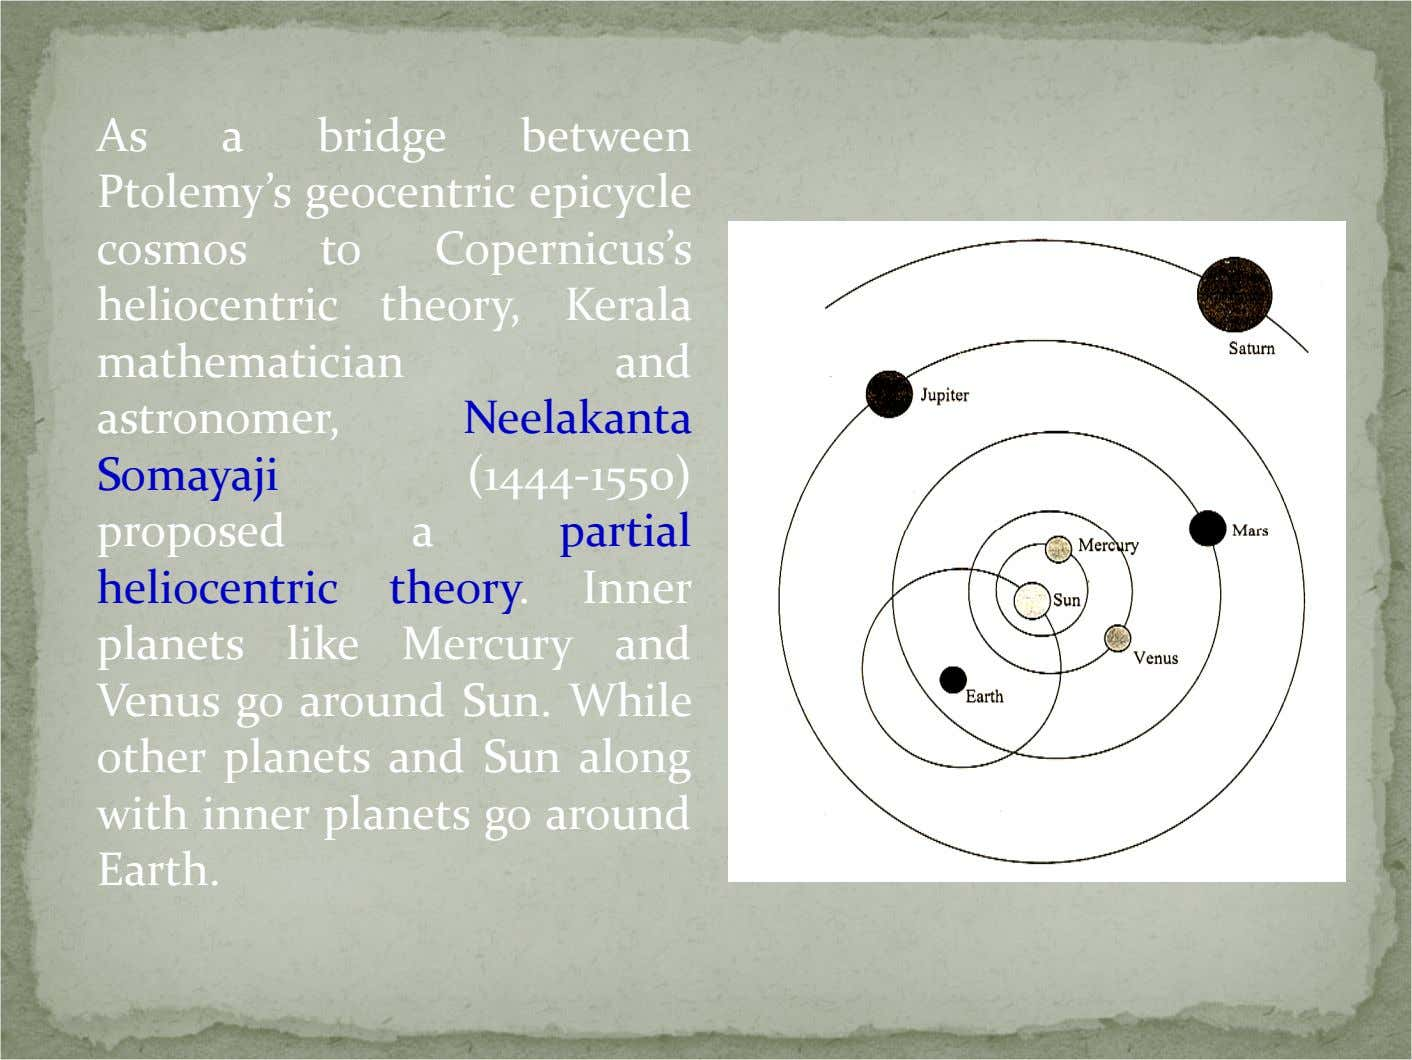 As a bridge between Ptolemy's geocentric epicycle cosmos to Copernicus's heliocentric theory, Kerala mathematician